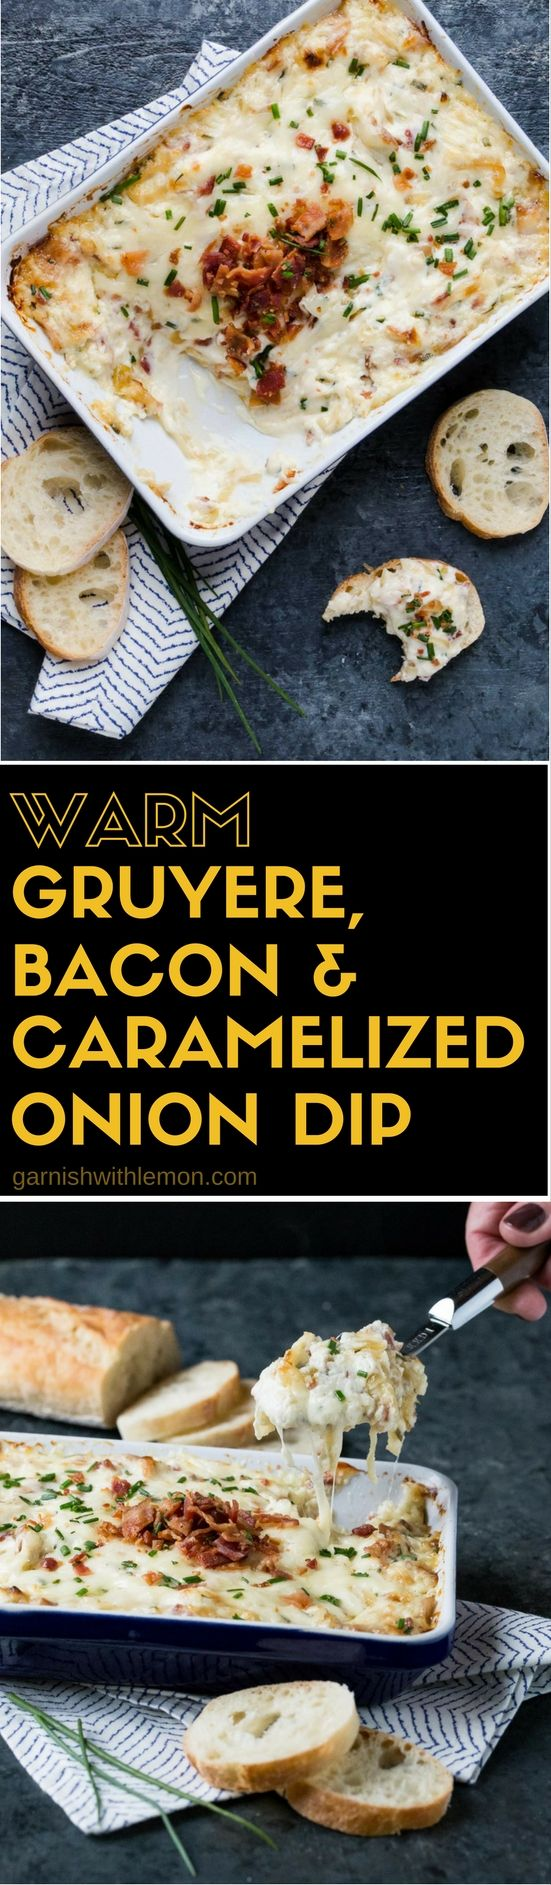 This wildly popular Warm Gruyere, Bacon and Caramelized Onion Dip is a great appetizer recipe for entertaining. It always disappears!